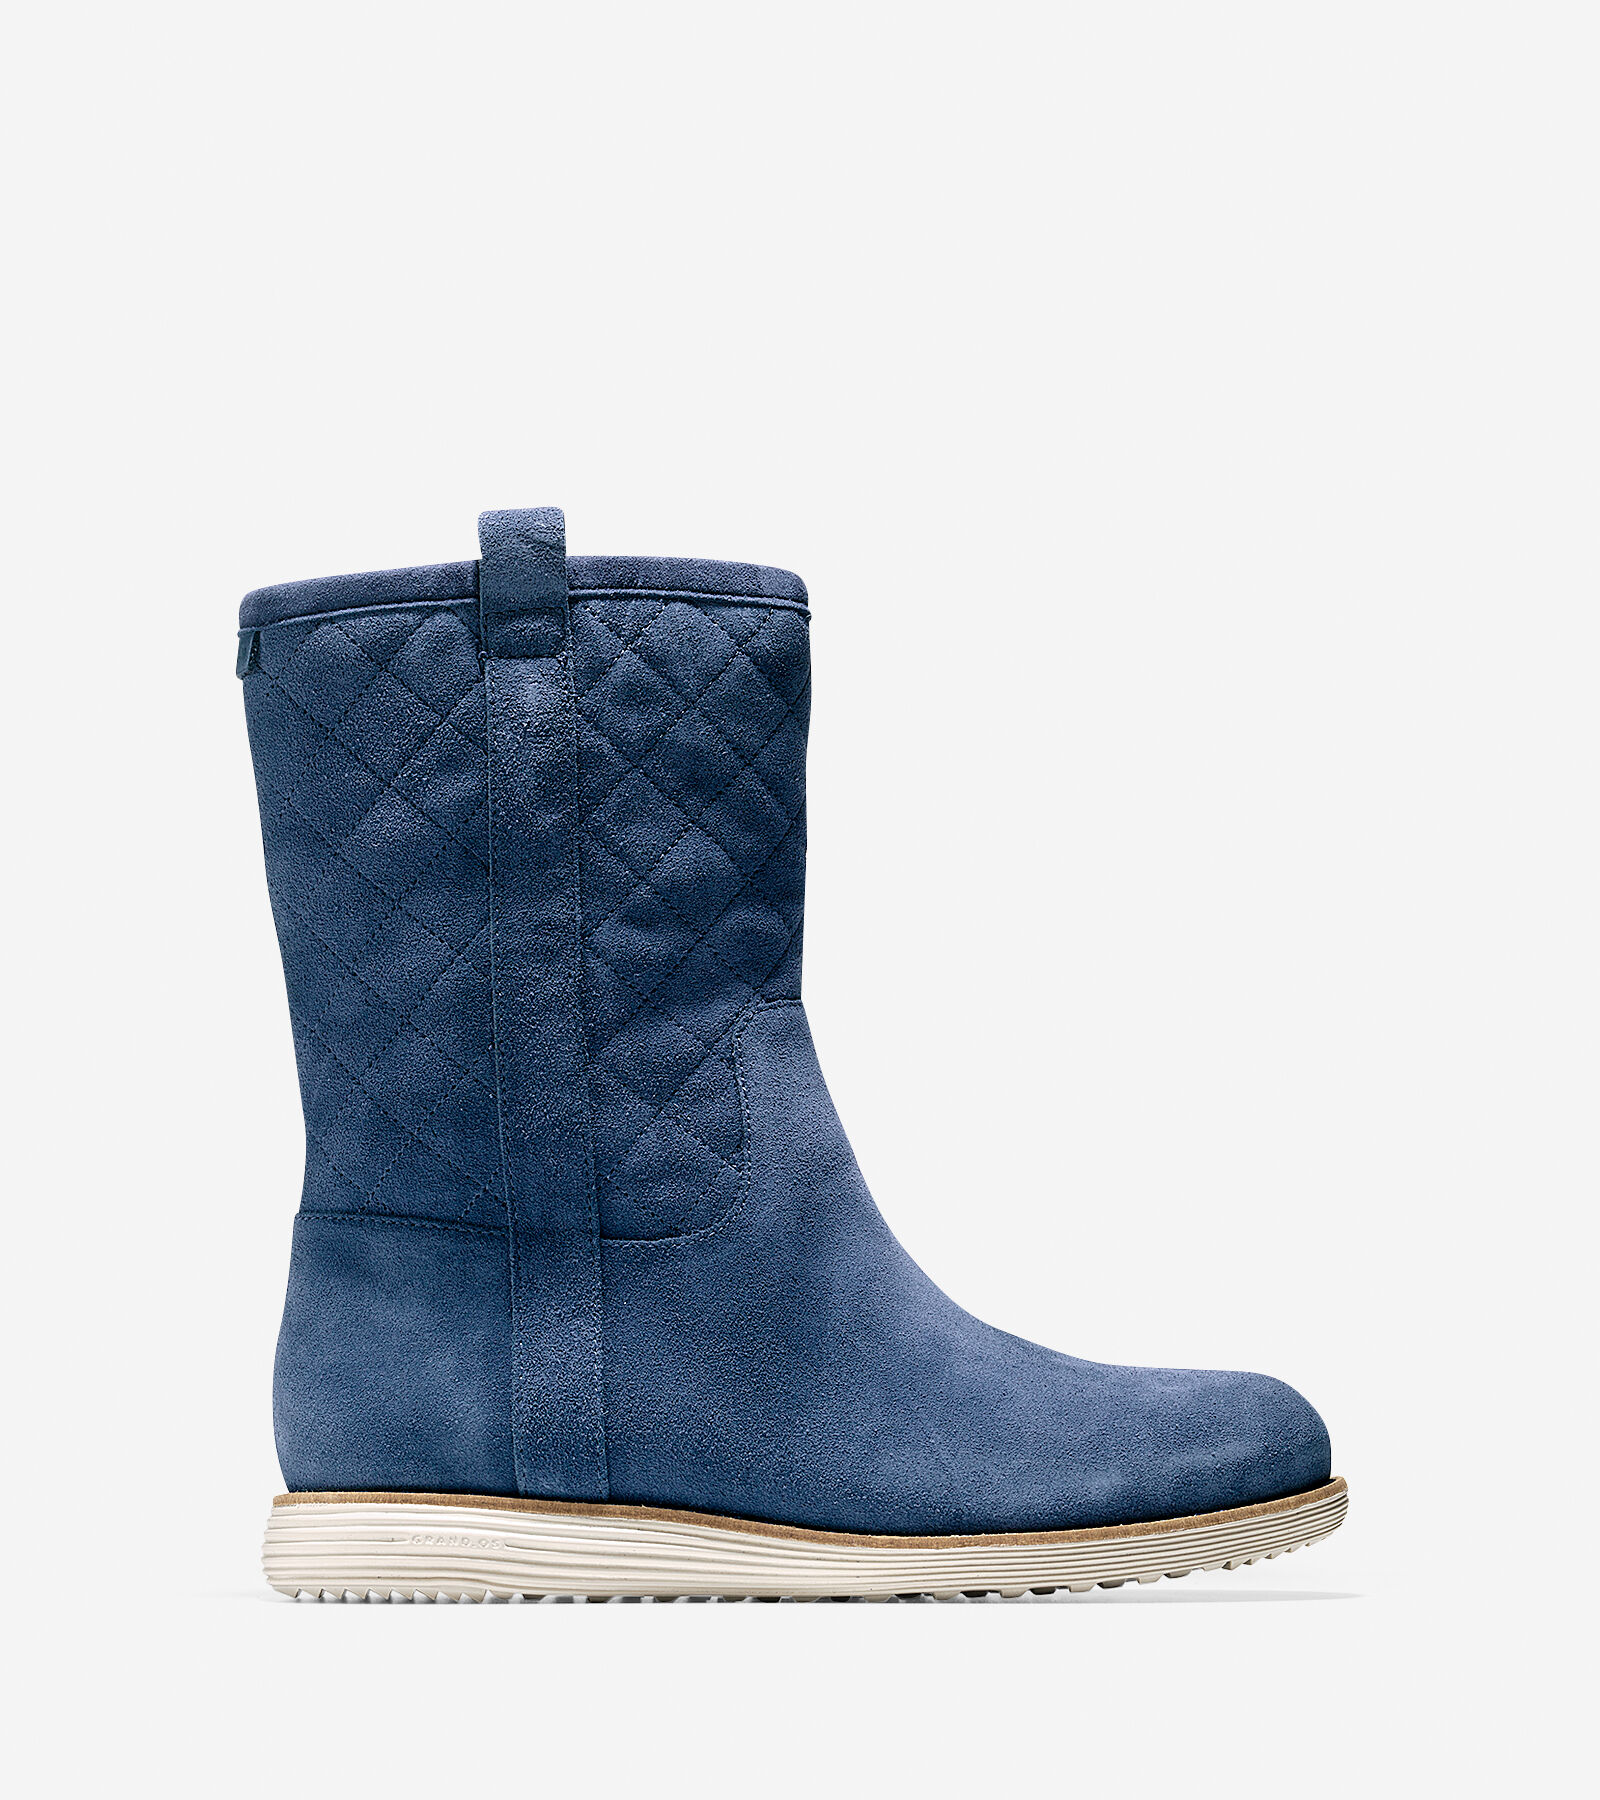 Womens Boots Cole Haan Roper Grand Boot Blazer Blue Suede